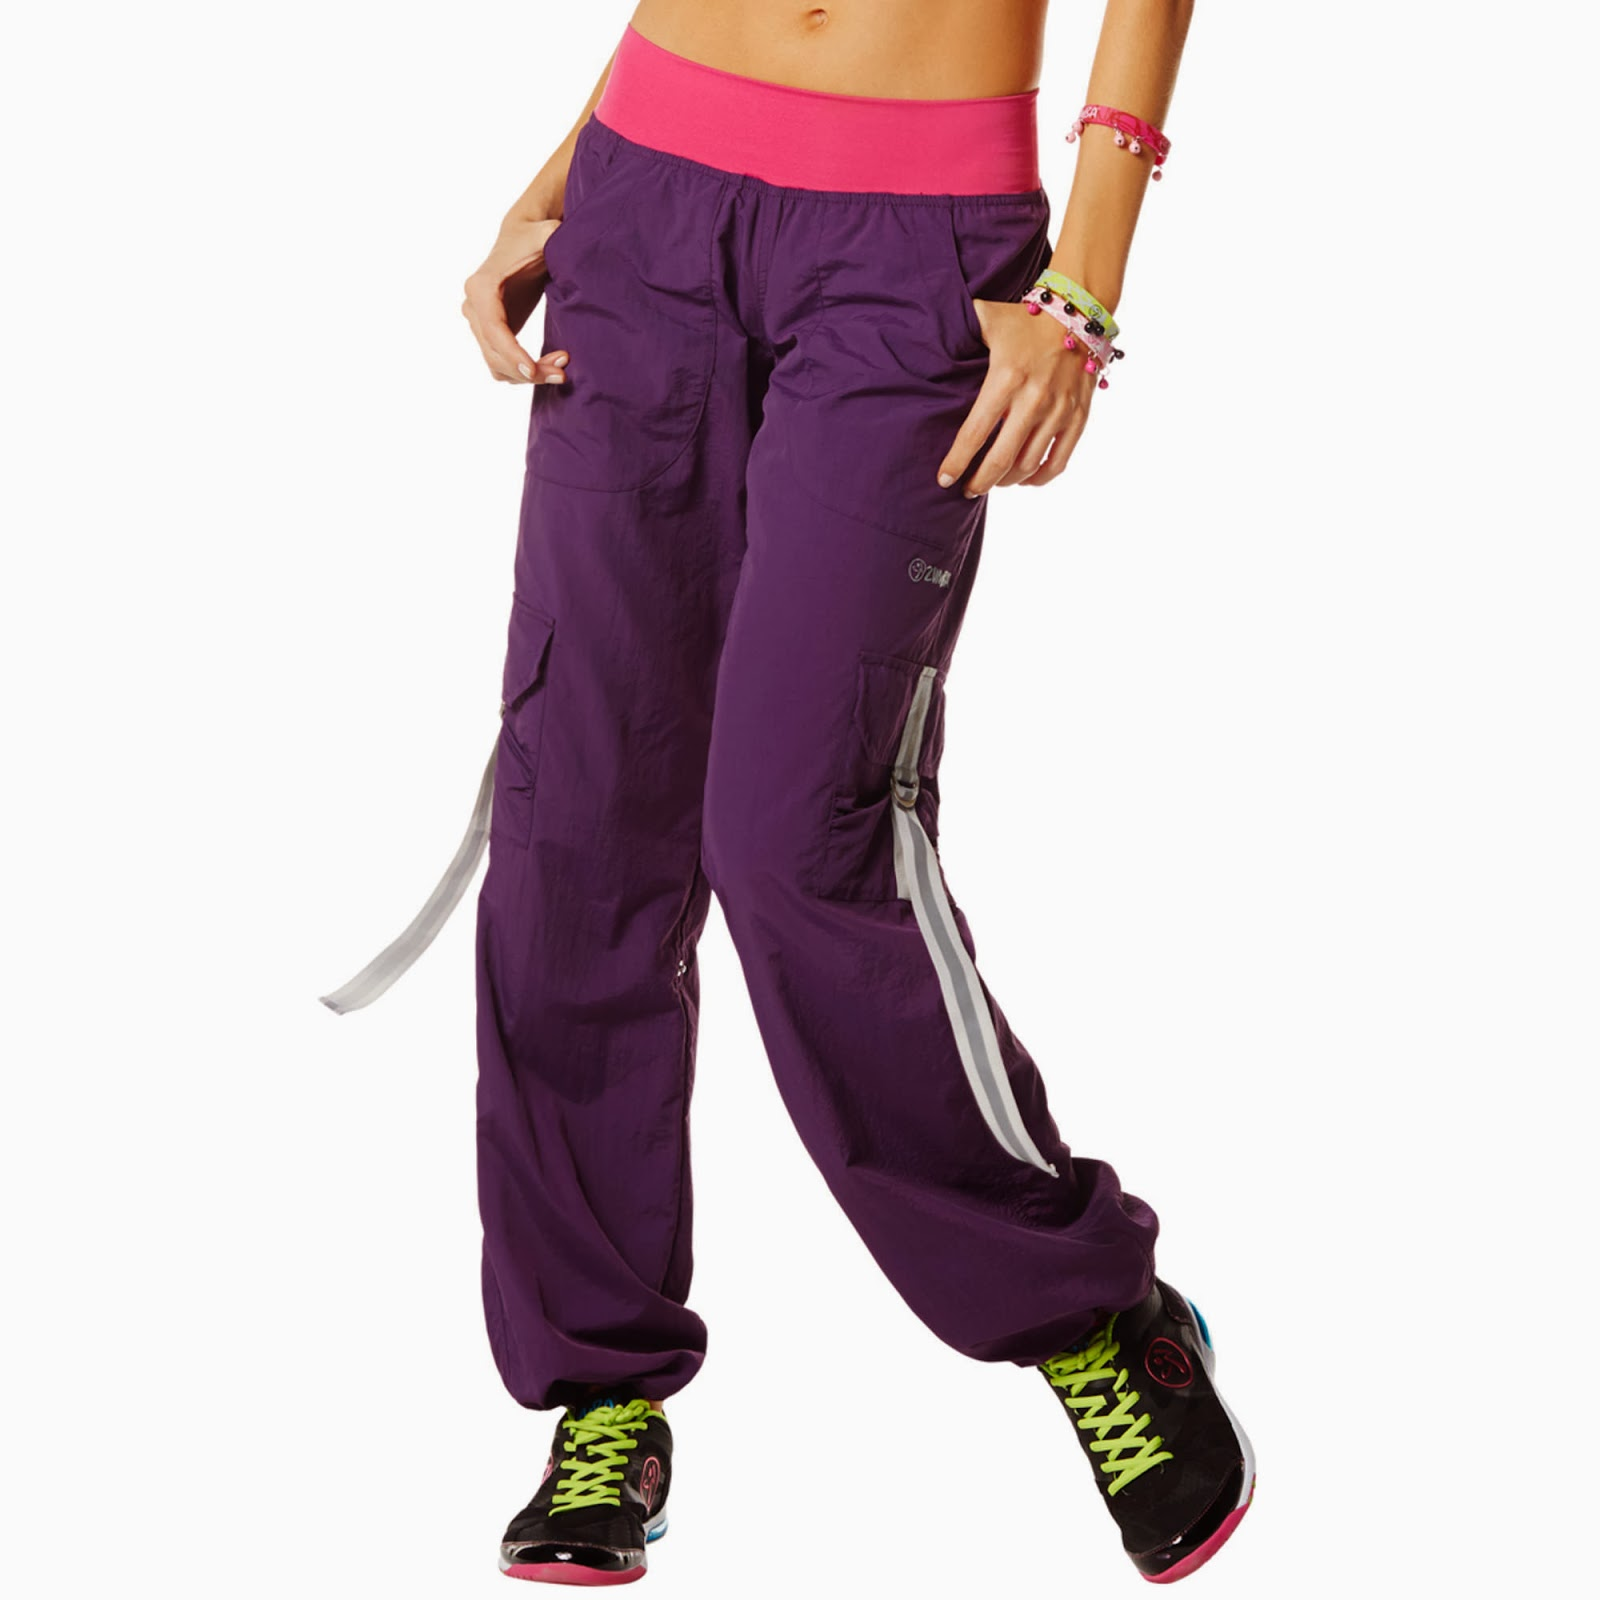 http://www.zumba.com/en-US/store-zin/US/product/craveworthy-cargo-pants-z1b00181?color=Berry%20Nice